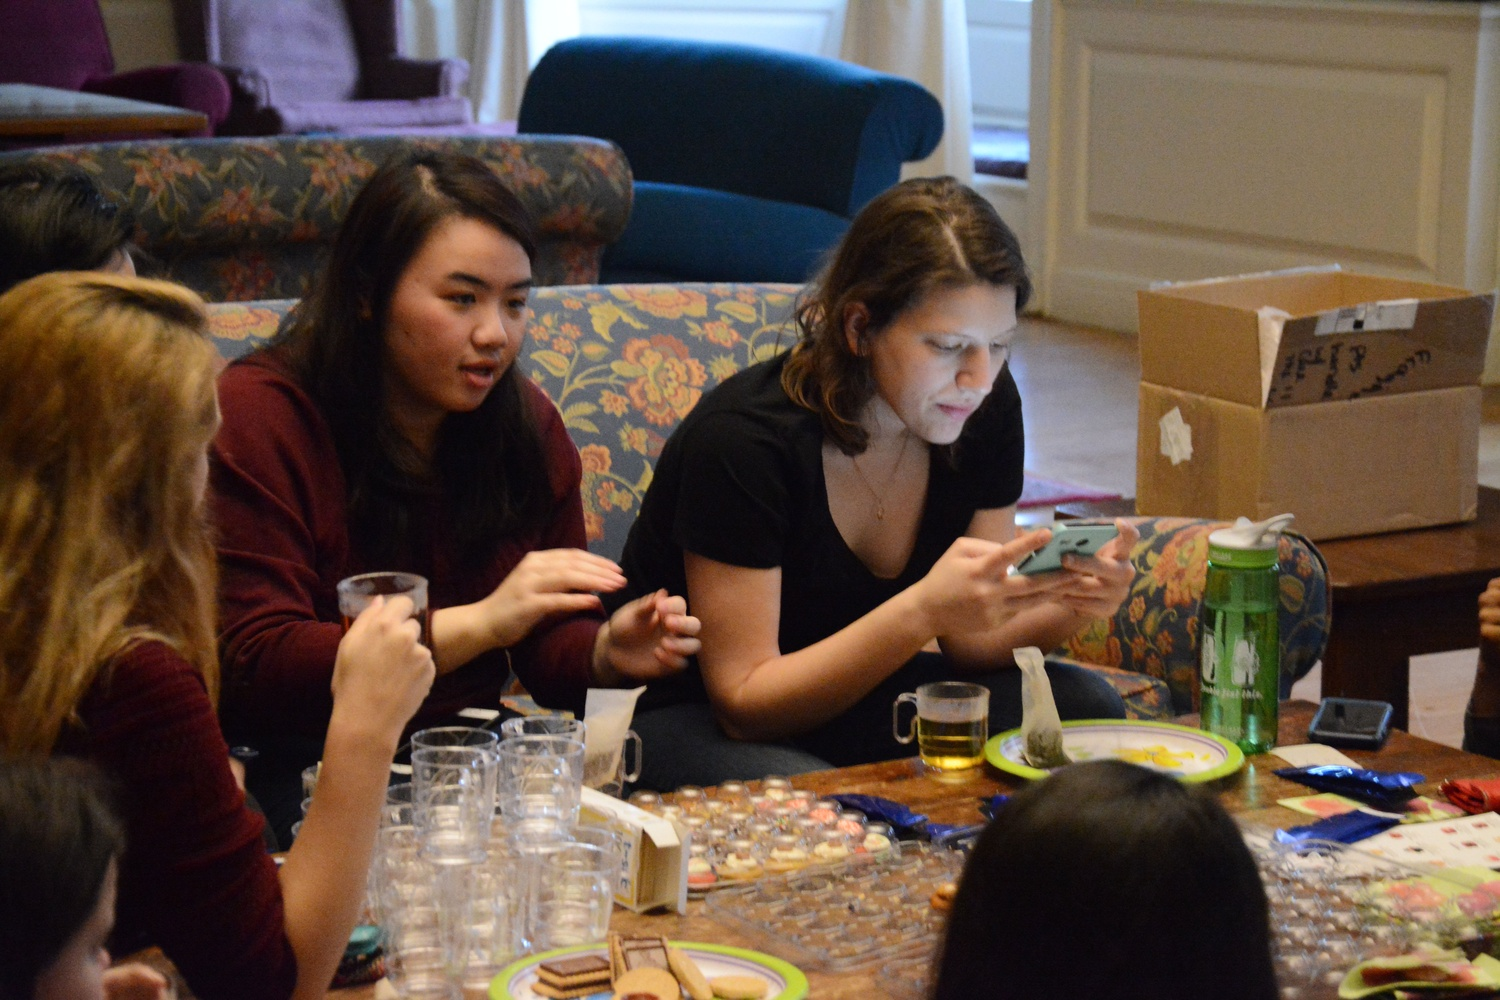 Priscilla W. Guo '18 discusses marriage at a Women in Computer Science Mentorship Tea Party in Lowell JCR last Wednesday evening. WiCS hosts a series of events throughout the semester for fostering a community of technically-skilled women.